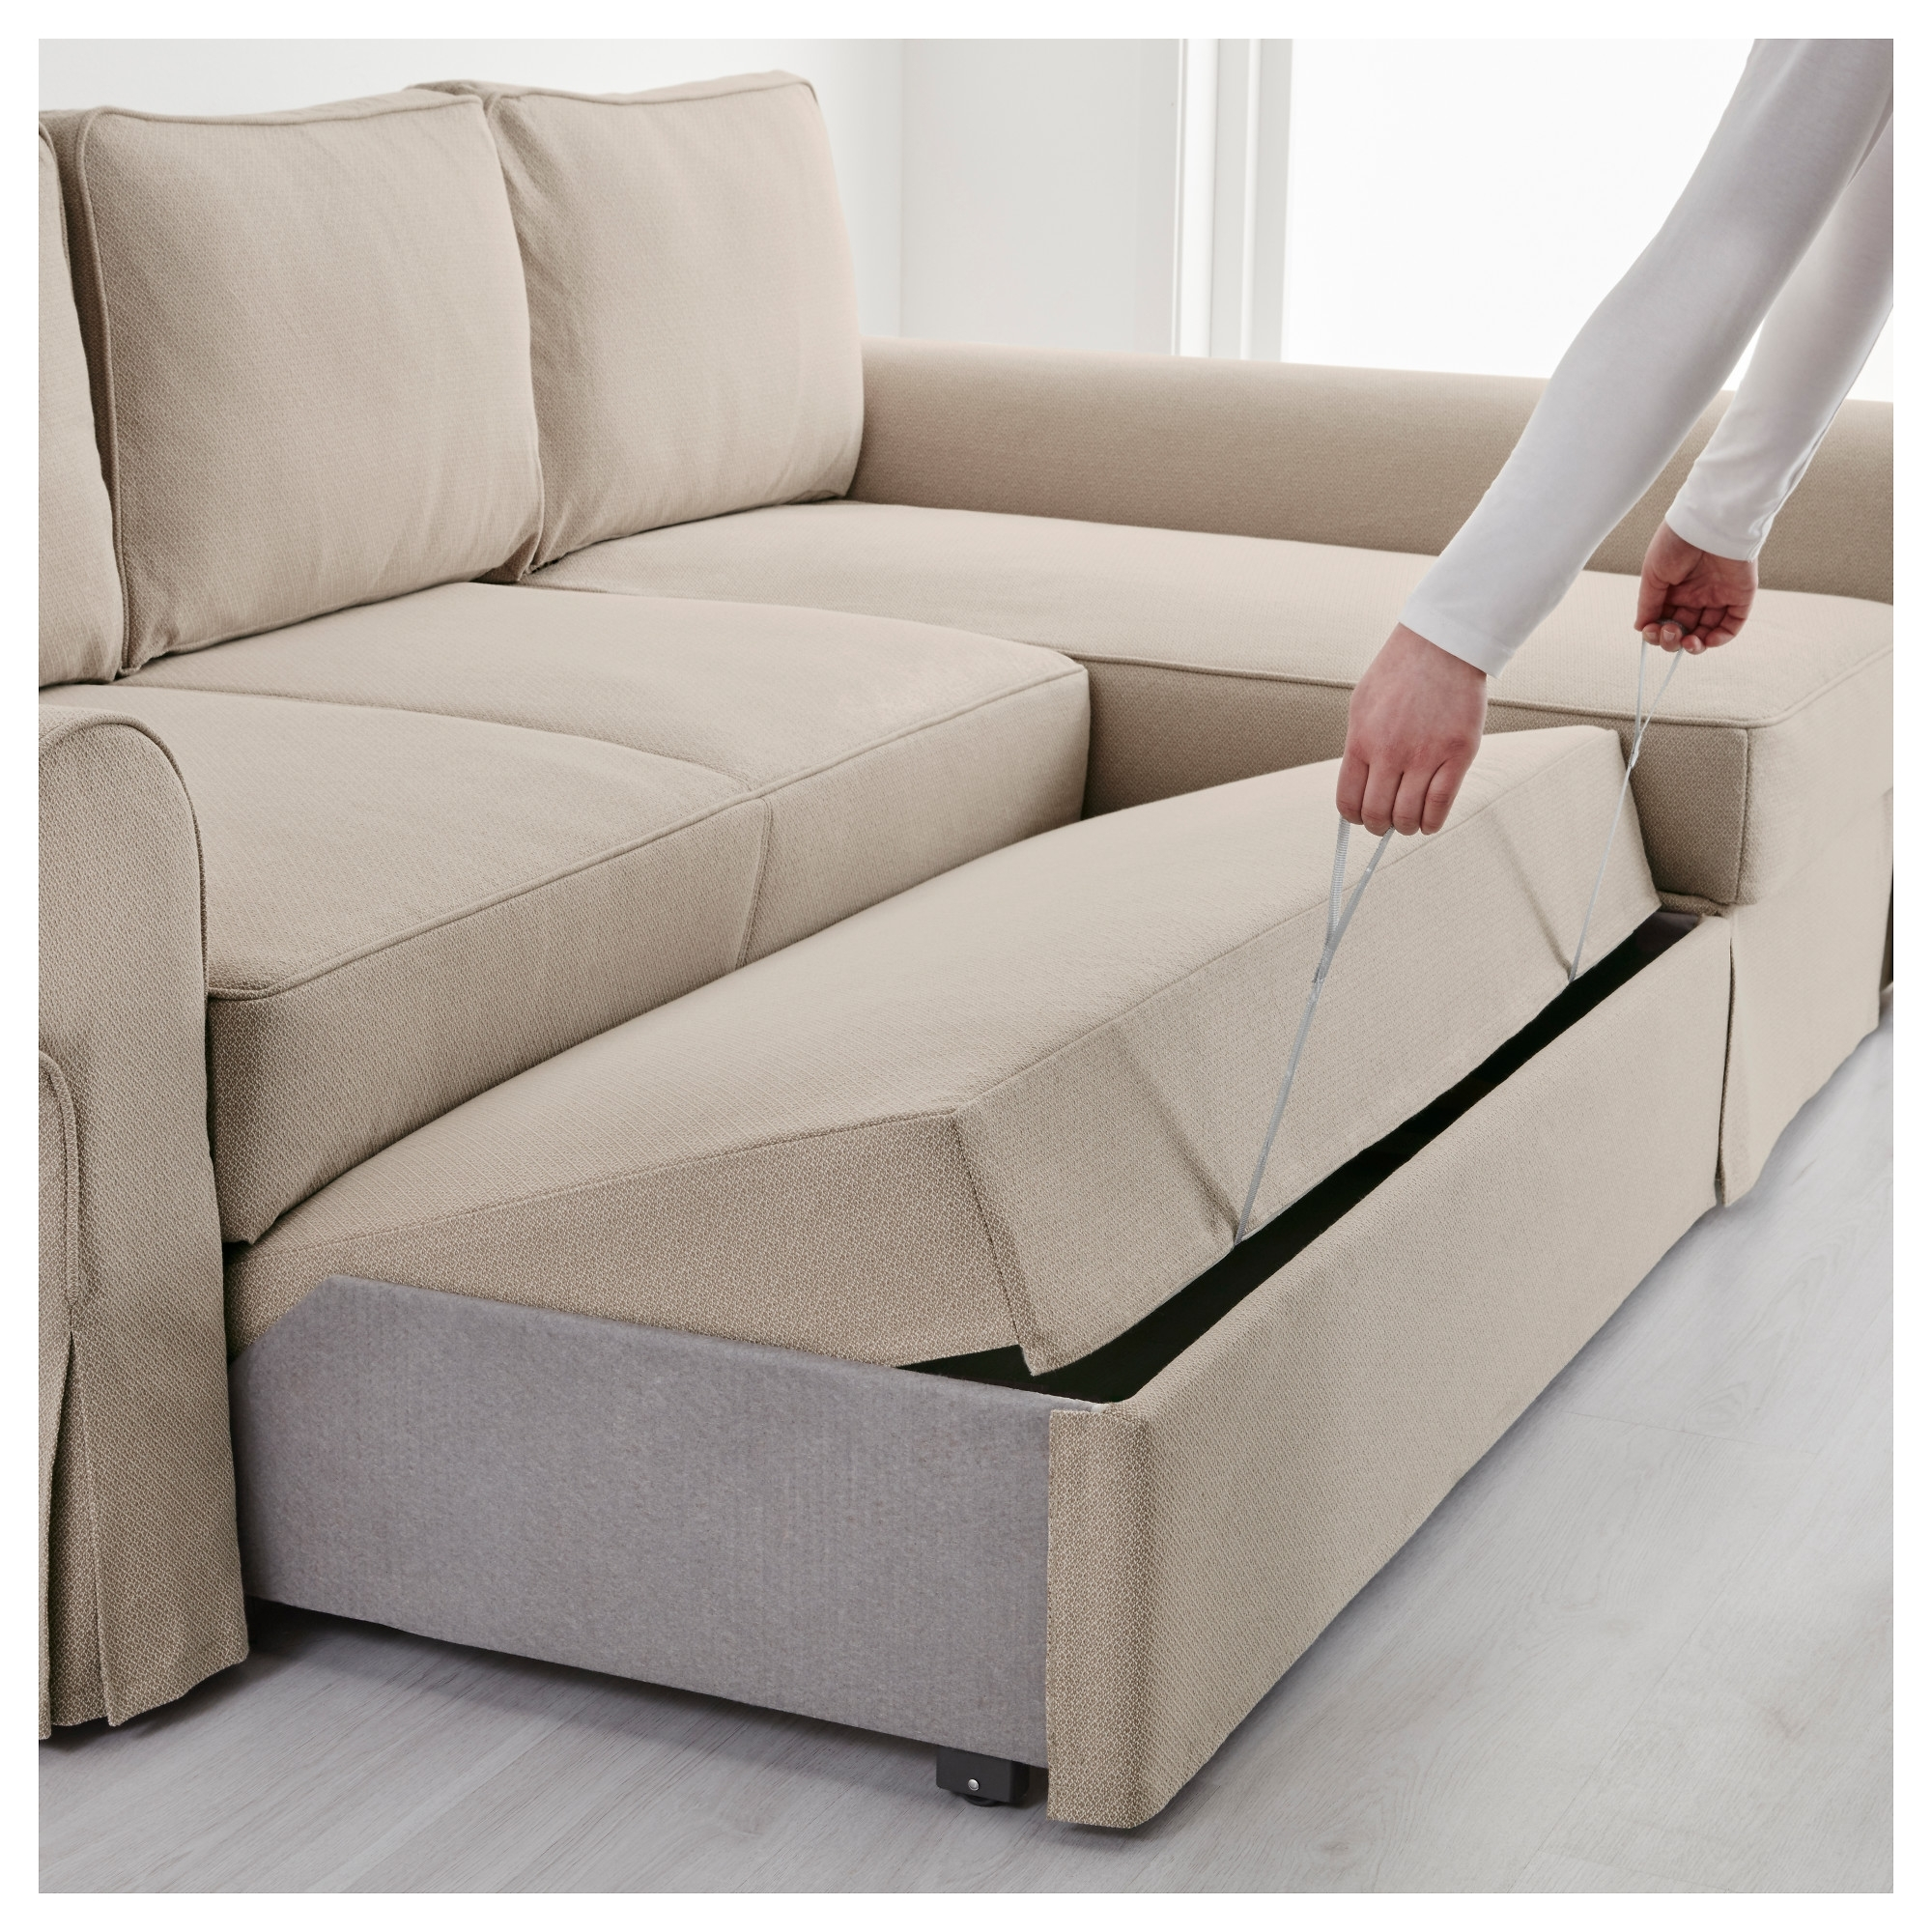 Backabro Sofa Bed With Chaise Longue – Nordvalla Dark Grey – Ikea For Well Known Ikea Sofa Beds With Chaise (View 7 of 15)